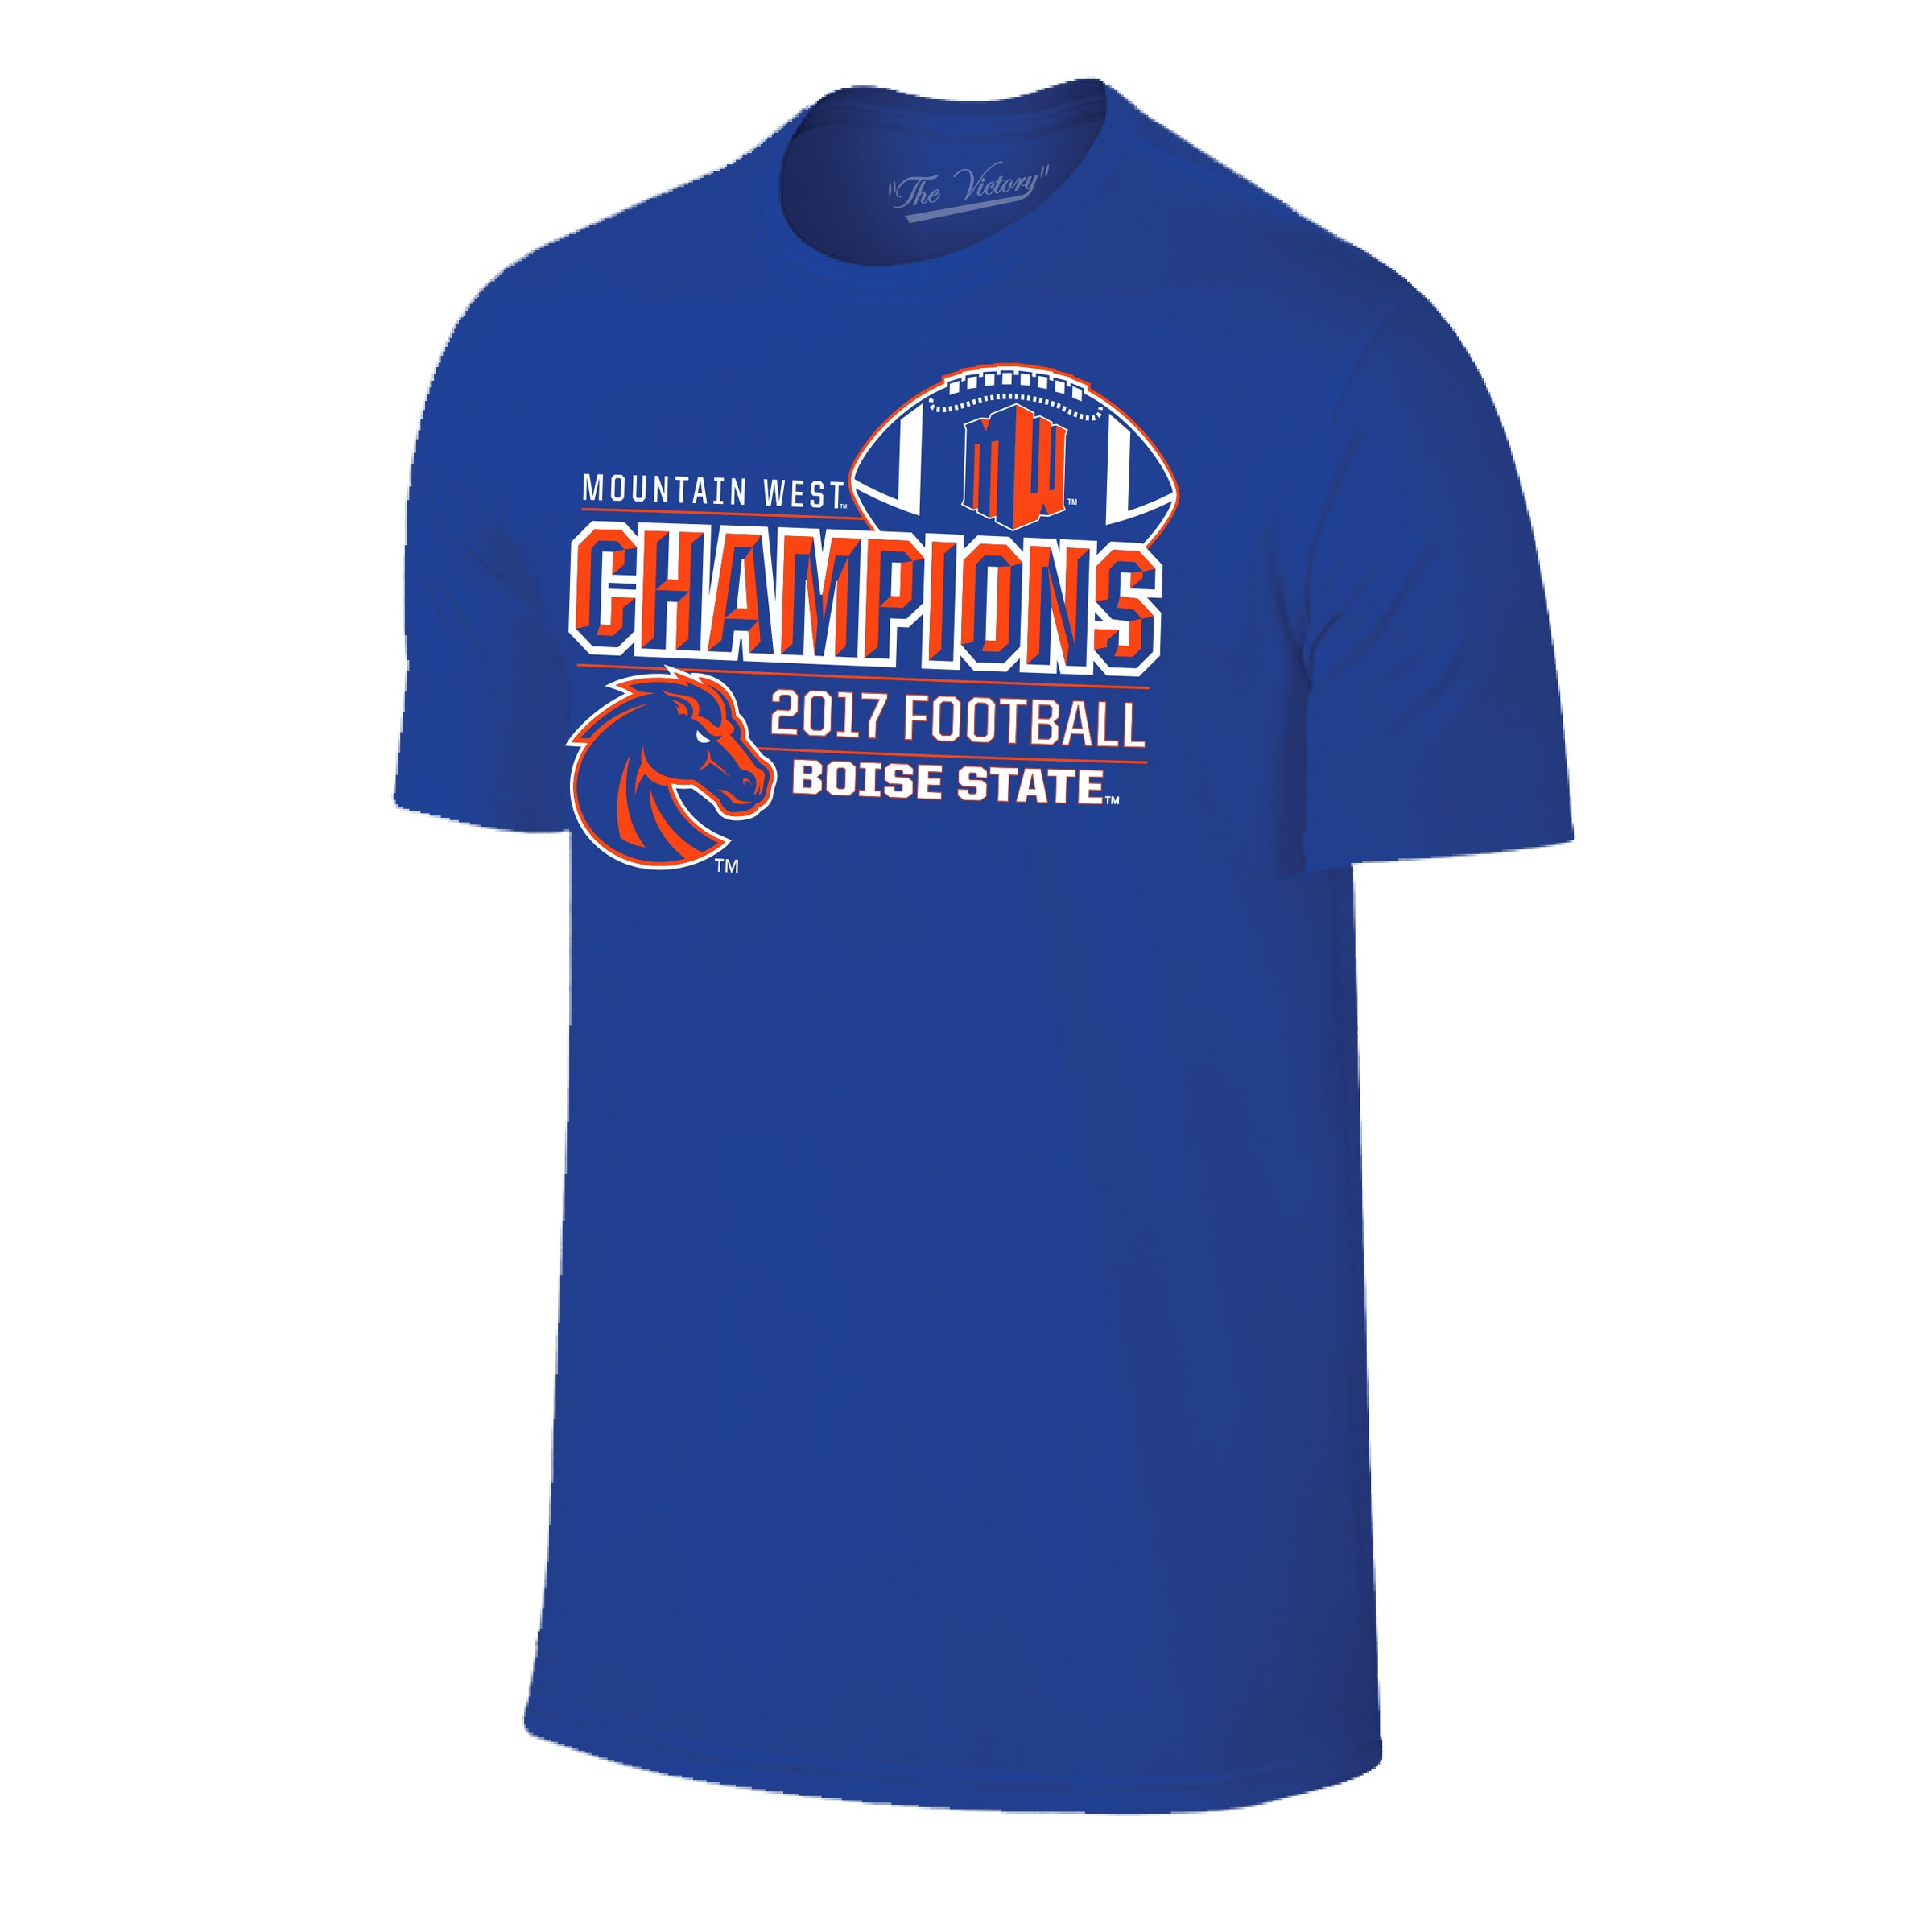 Conference Champions 2017 College University Primary Color Football T Shirt